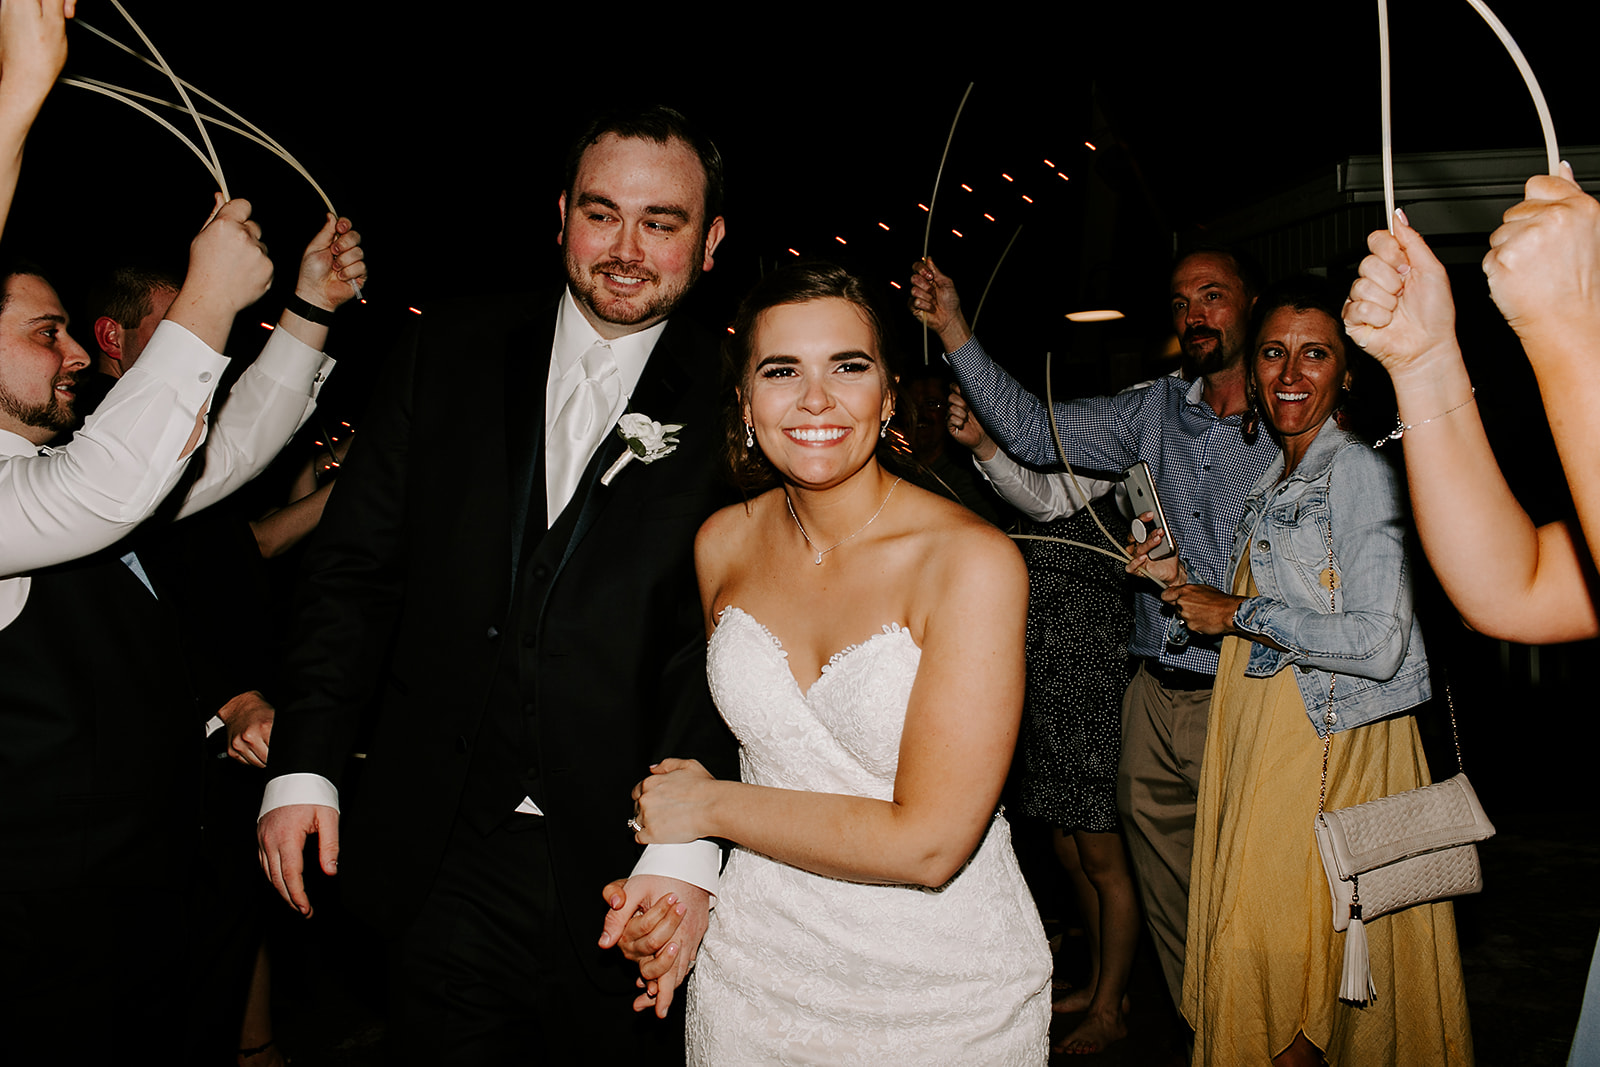 Lauren_and_Andrew_Mustard_Seed_Gardens_Noblesville_Indiana_by_Emily_Wehner_Photography-1105.jpg